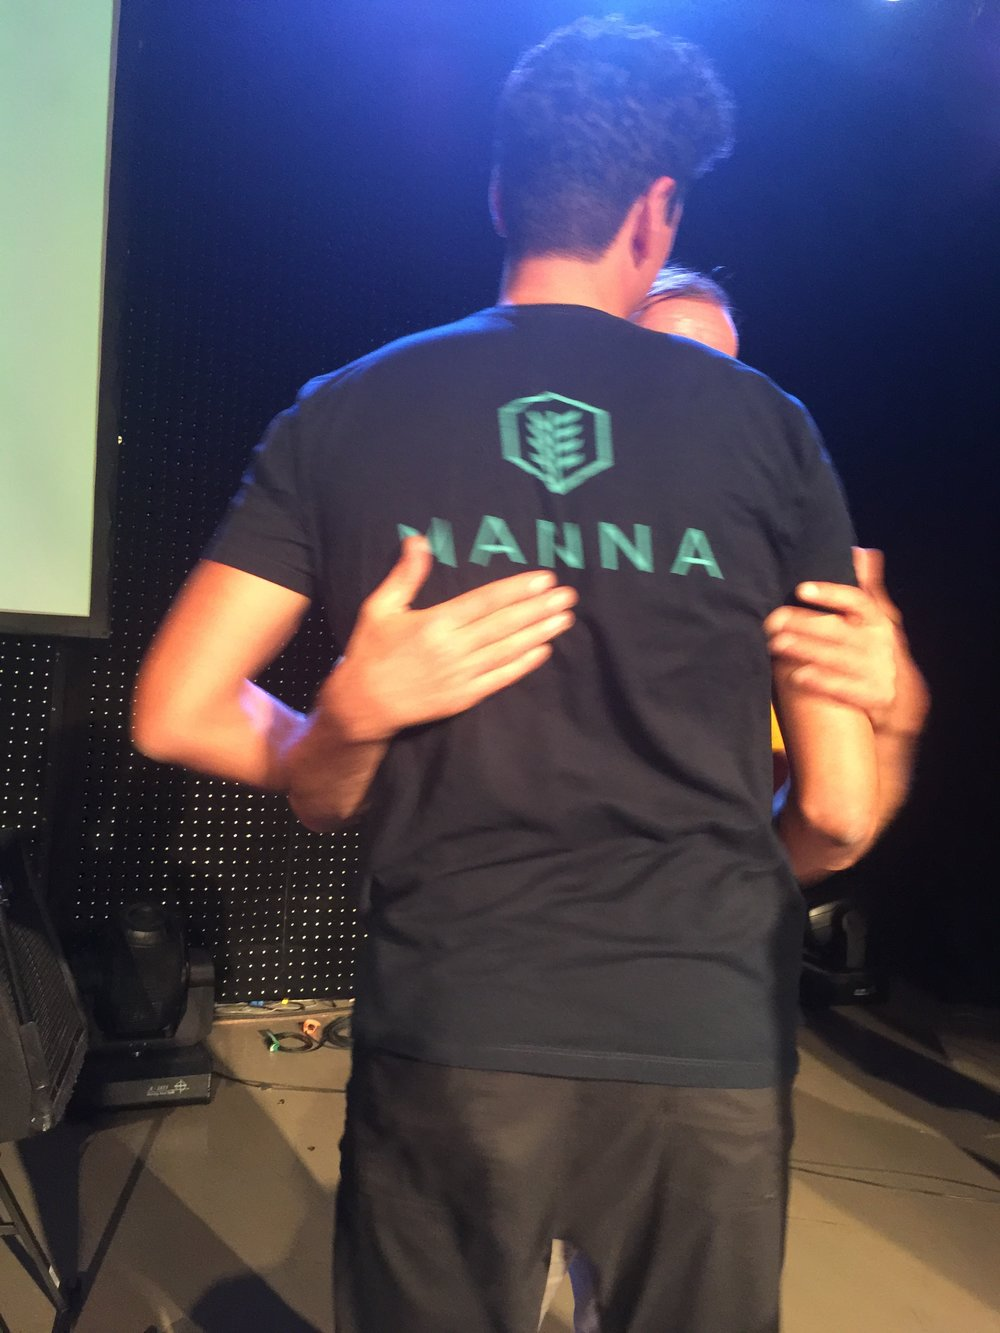 """Hugging it out"" after explaining Wim's influence on the Manna program."